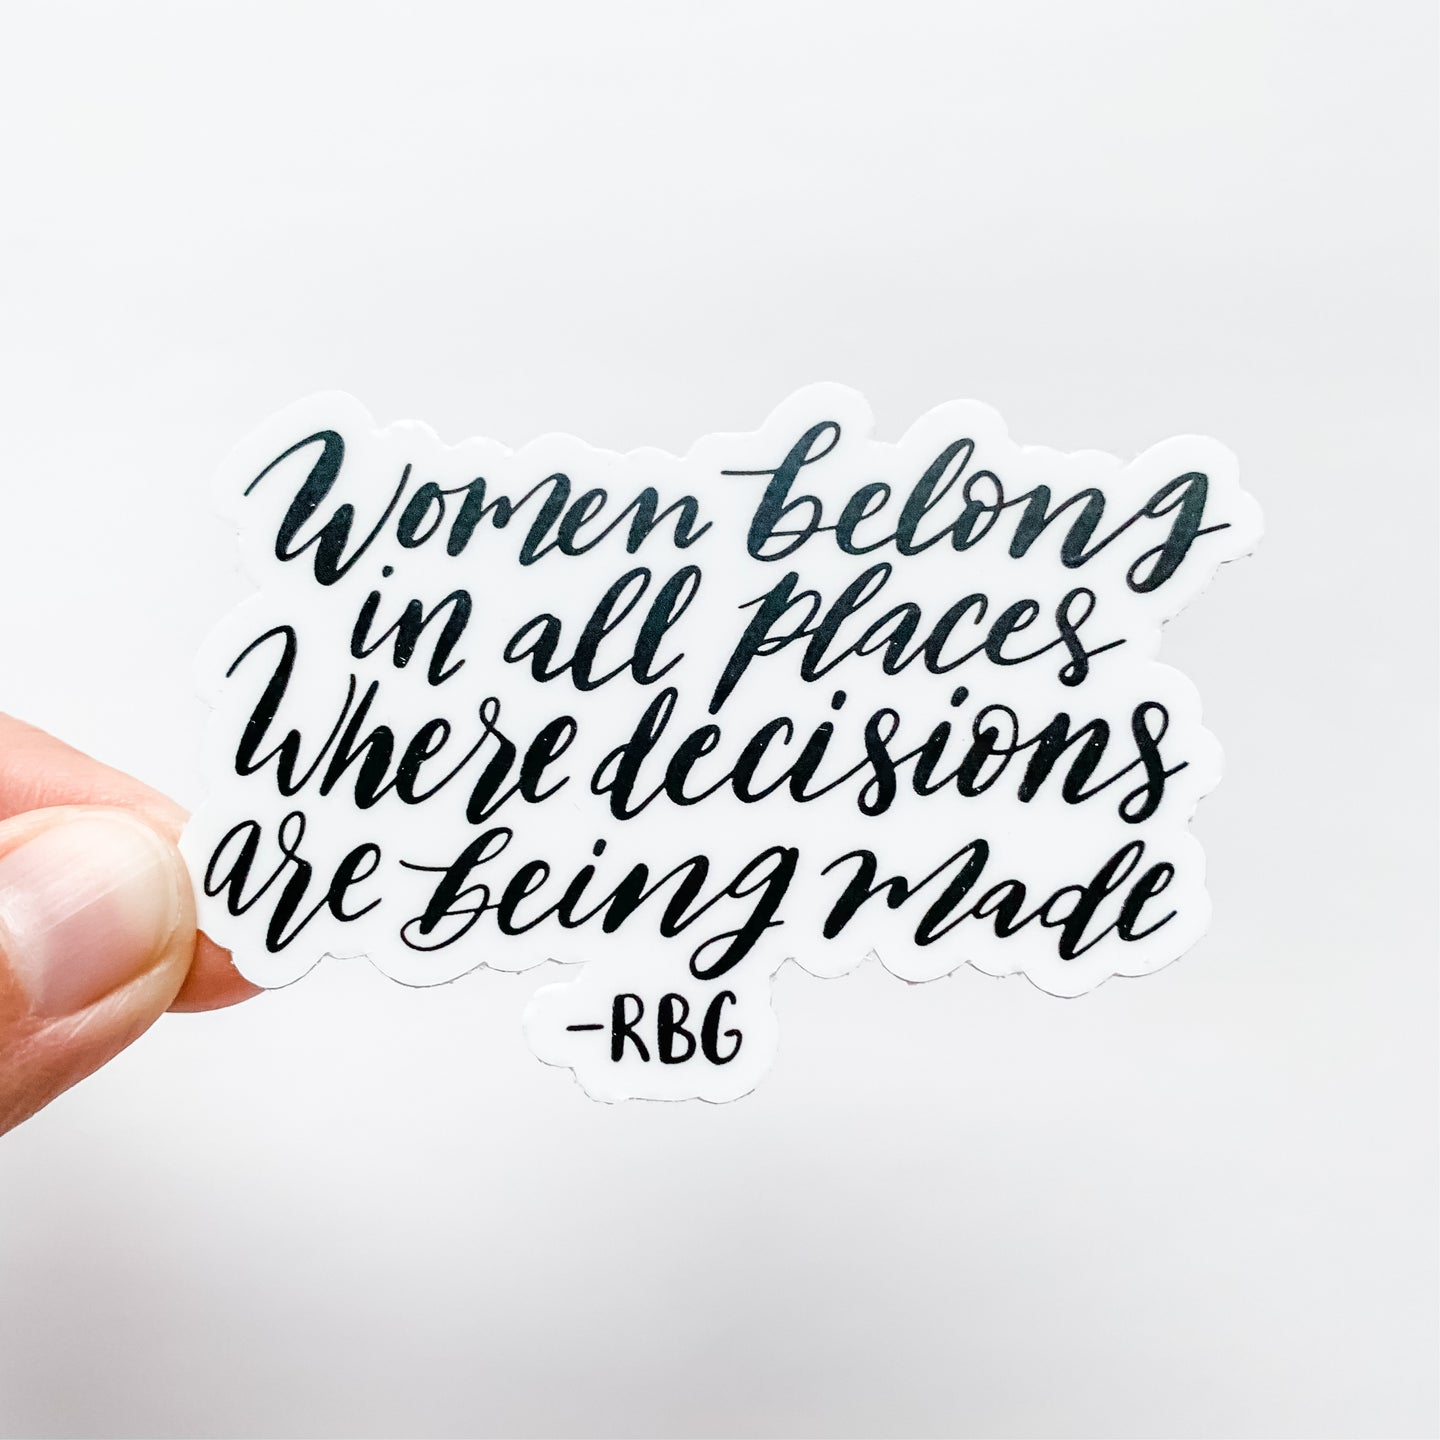 Women Belong RBG Sticker Decal Ruth Bader Ginsburg